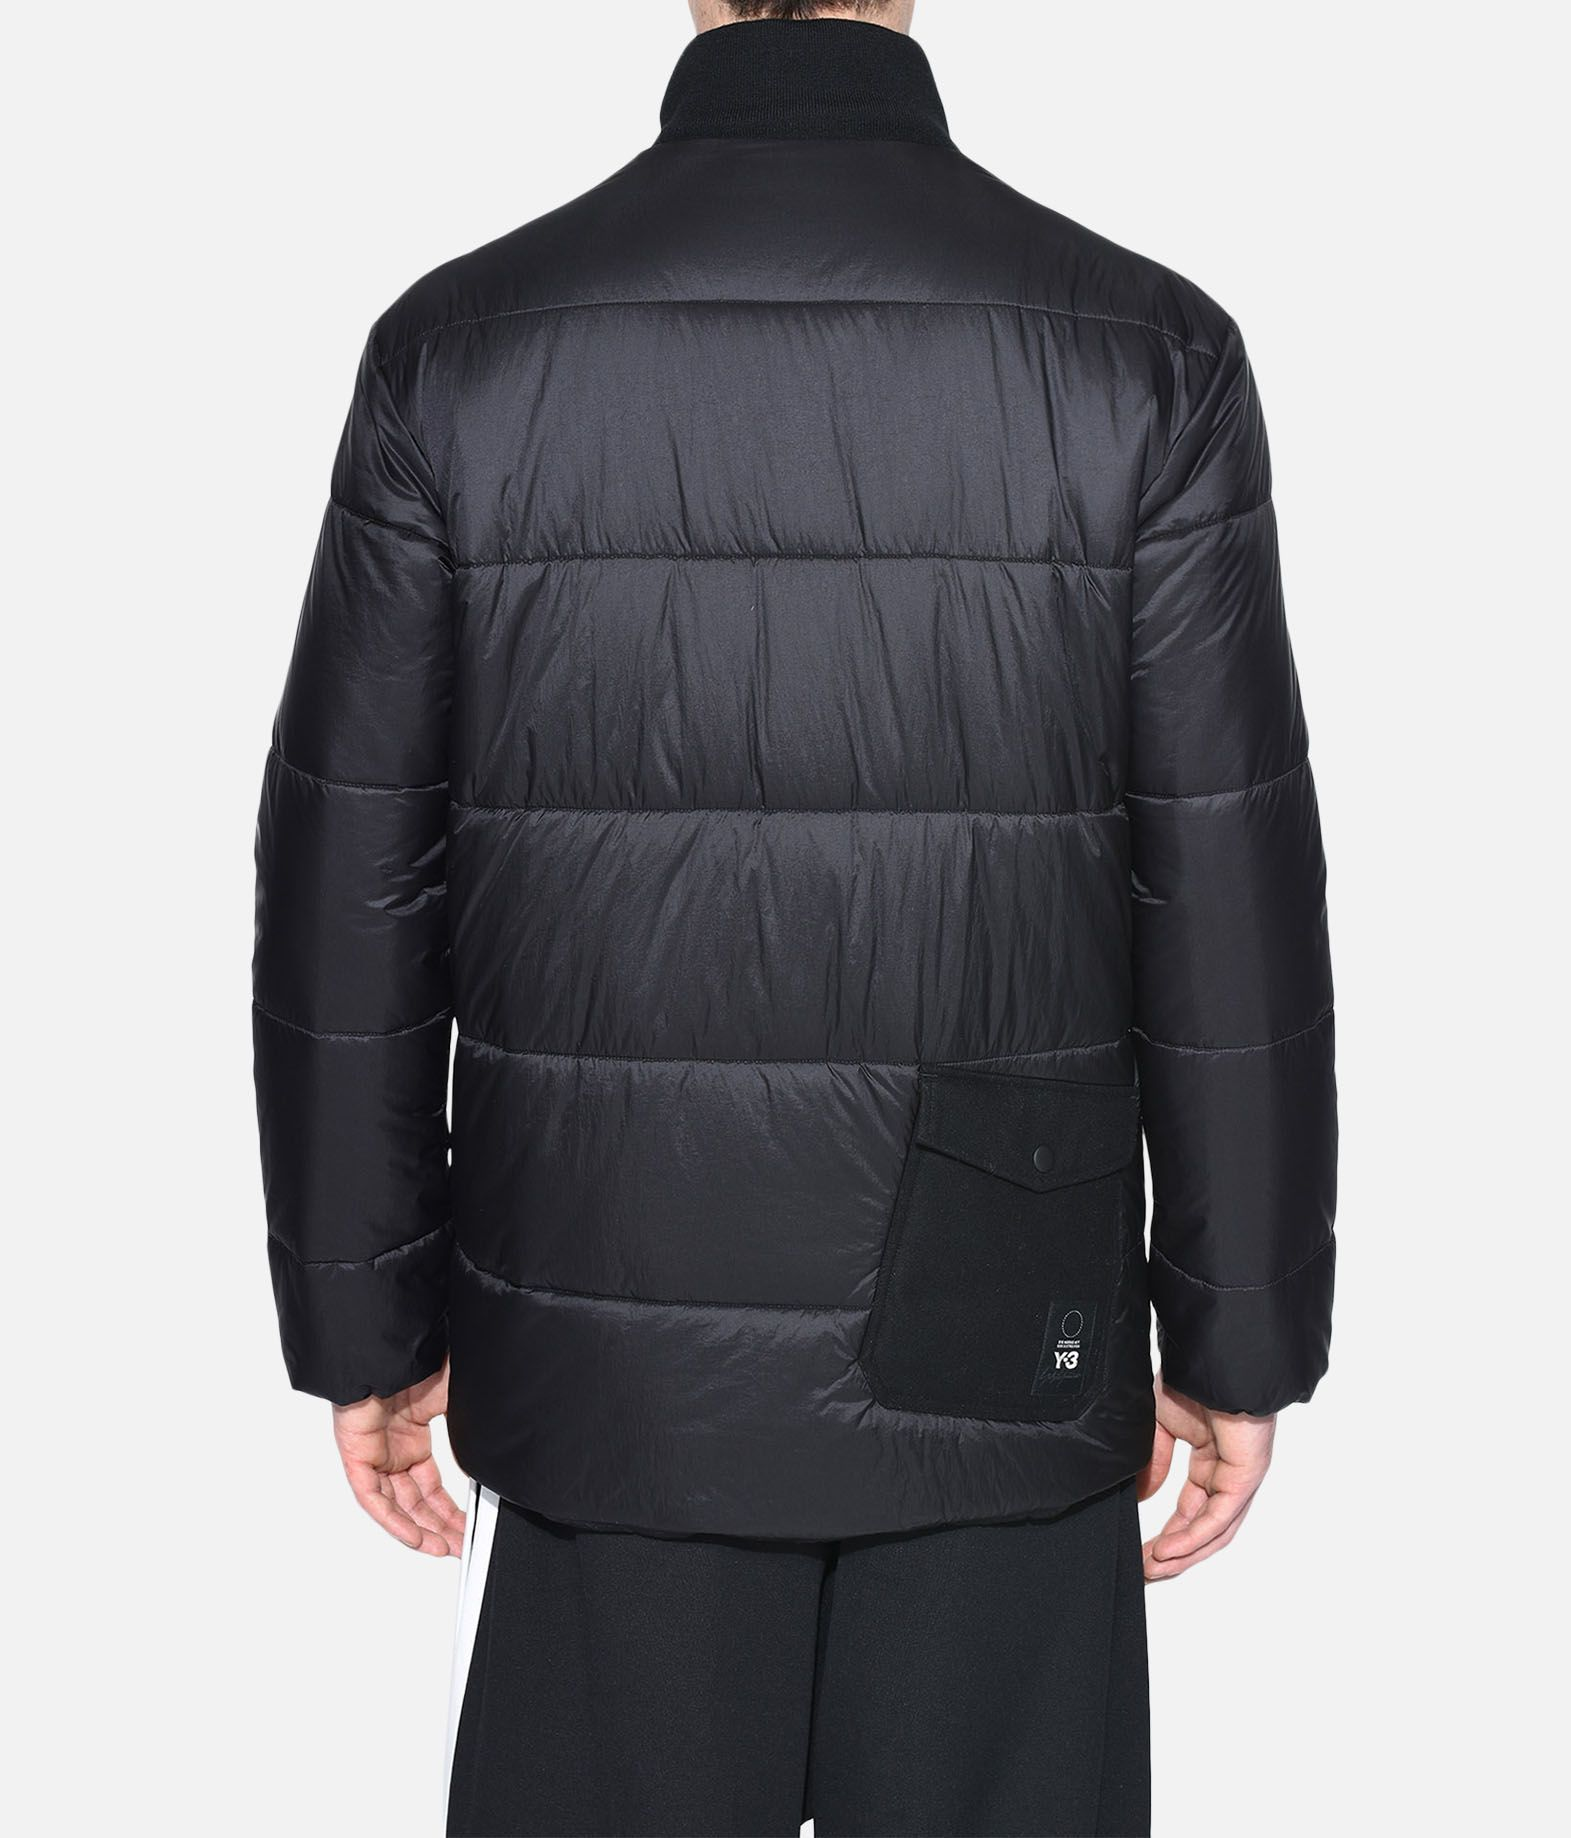 Y-3 Y-3 Patchwork Down Jacket Down jacket Man d